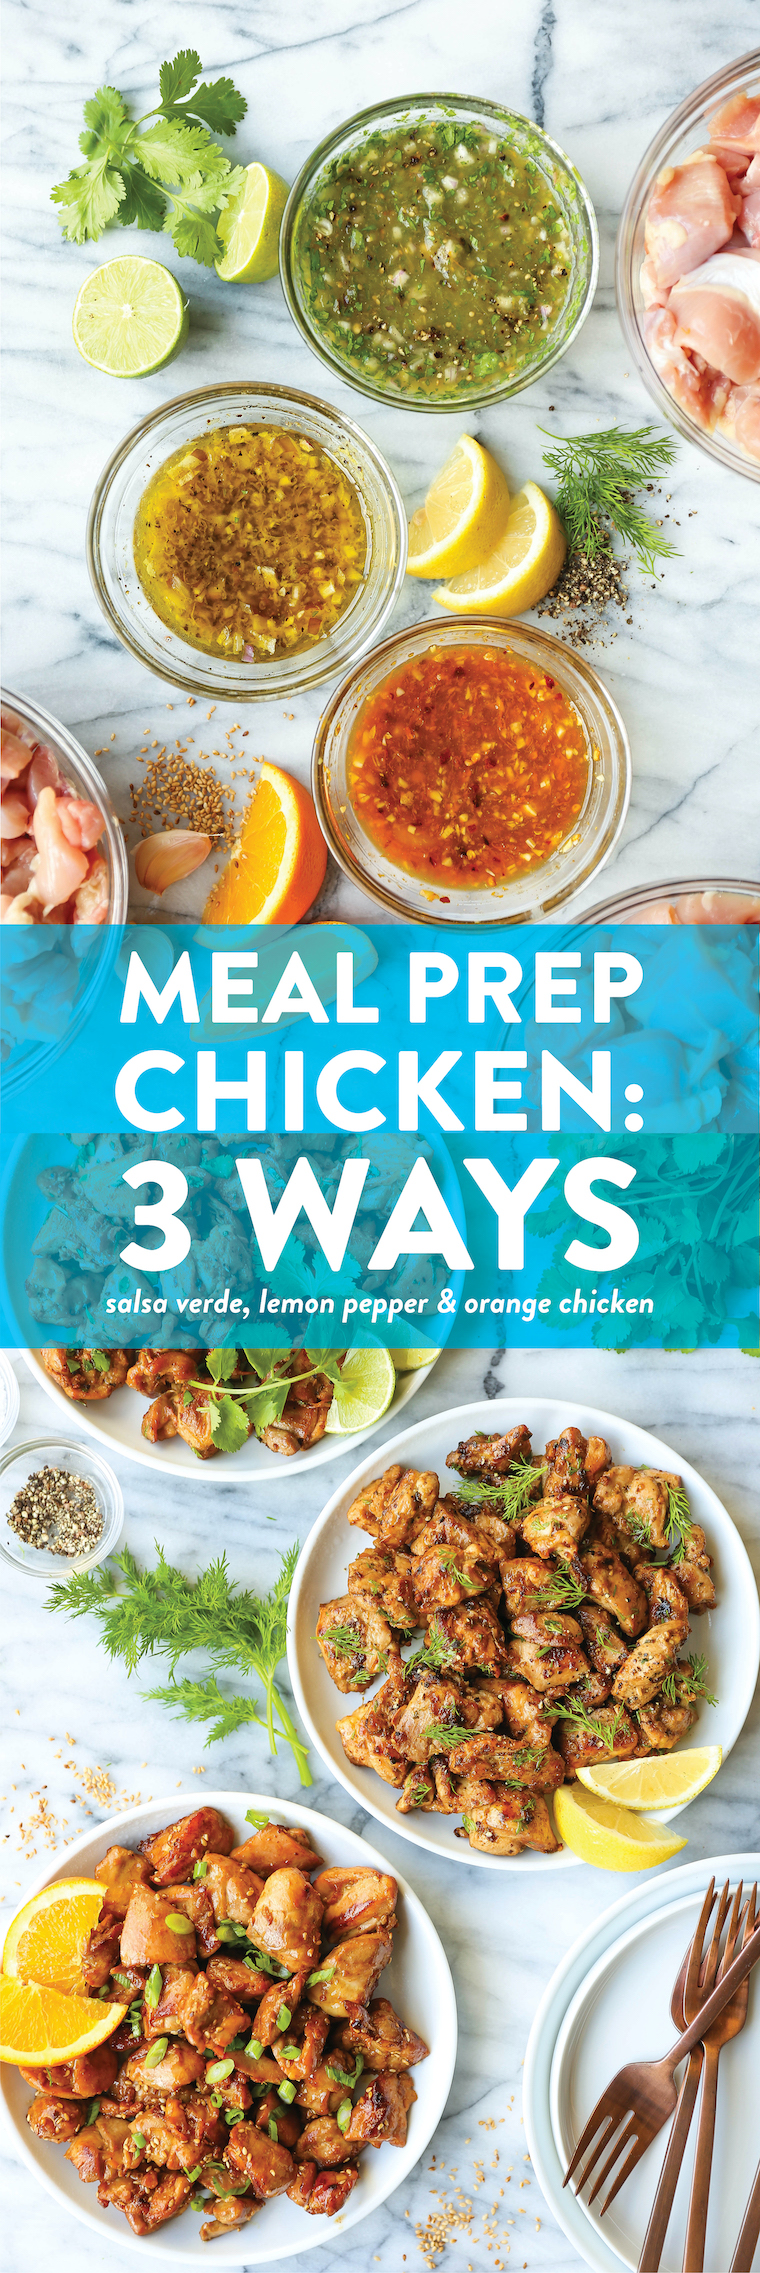 Meal Prep Chicken - 3 Ways - How to meal prep chicken for the entire week! Salsa verde, lemon pepper + orange chicken marinades included. SO GOOD, SO EASY!